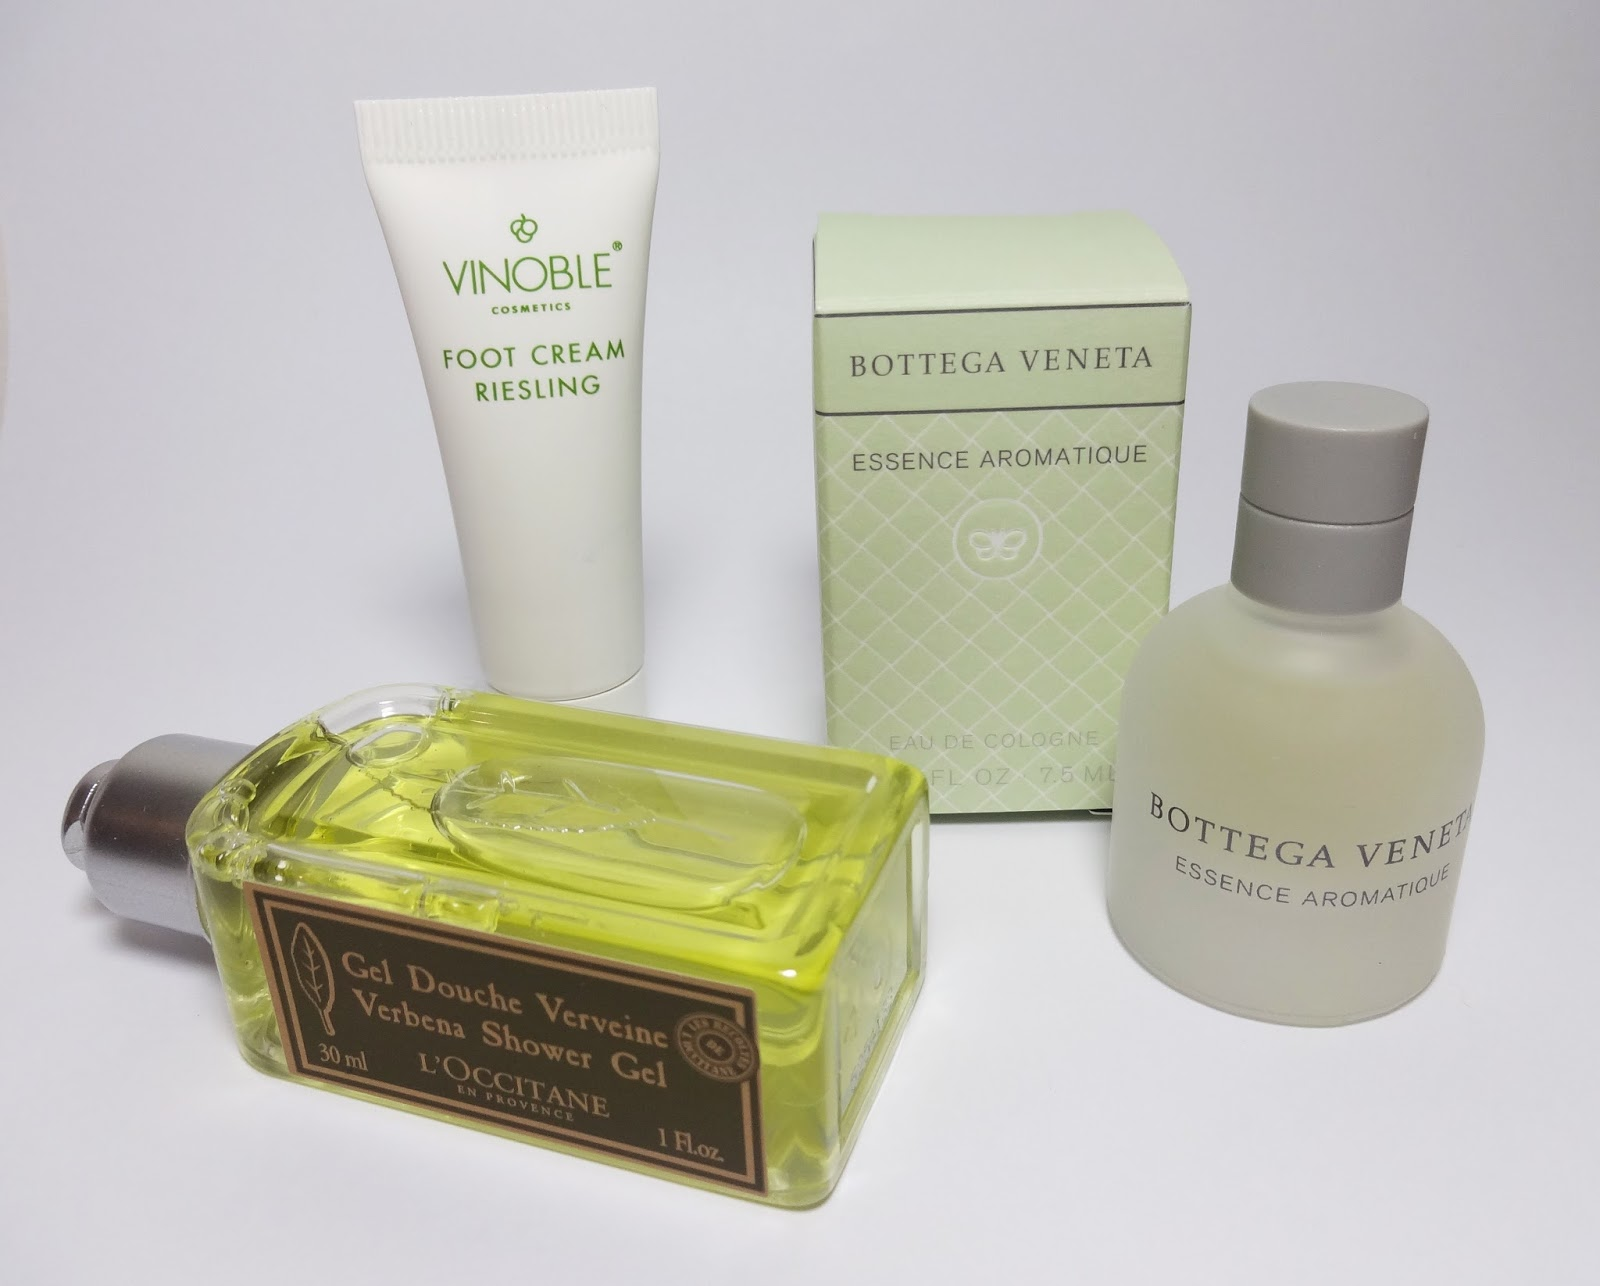 Vinobile Bottega Veneta L'occitane